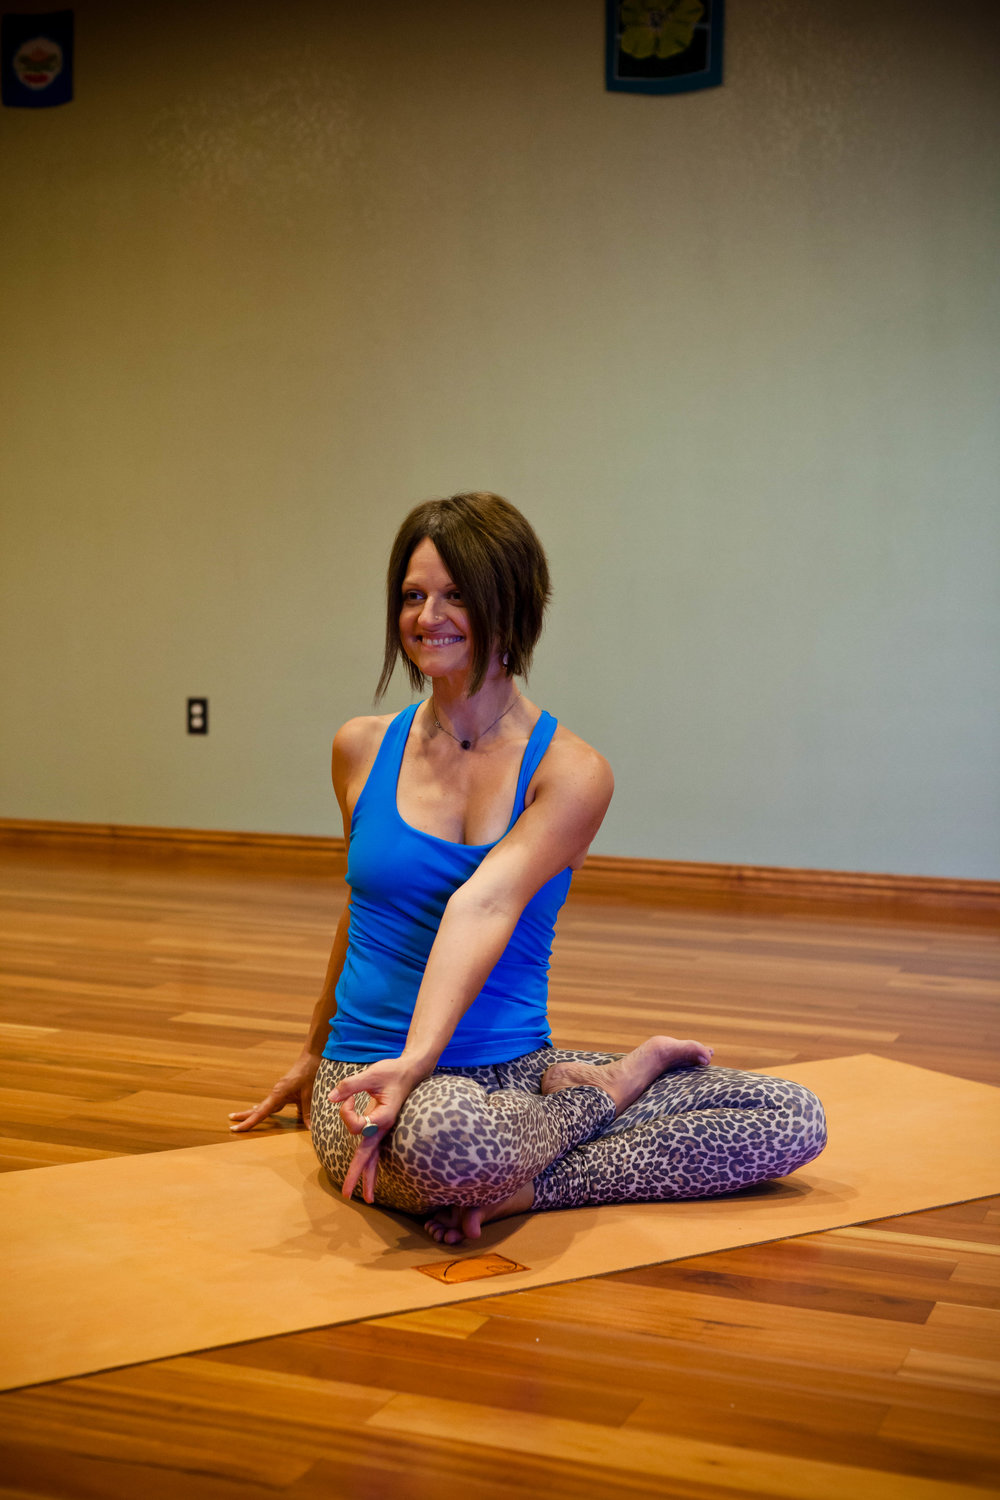 teresa desmond, ryt, teacher at 3tree yoga in fort worth, tx